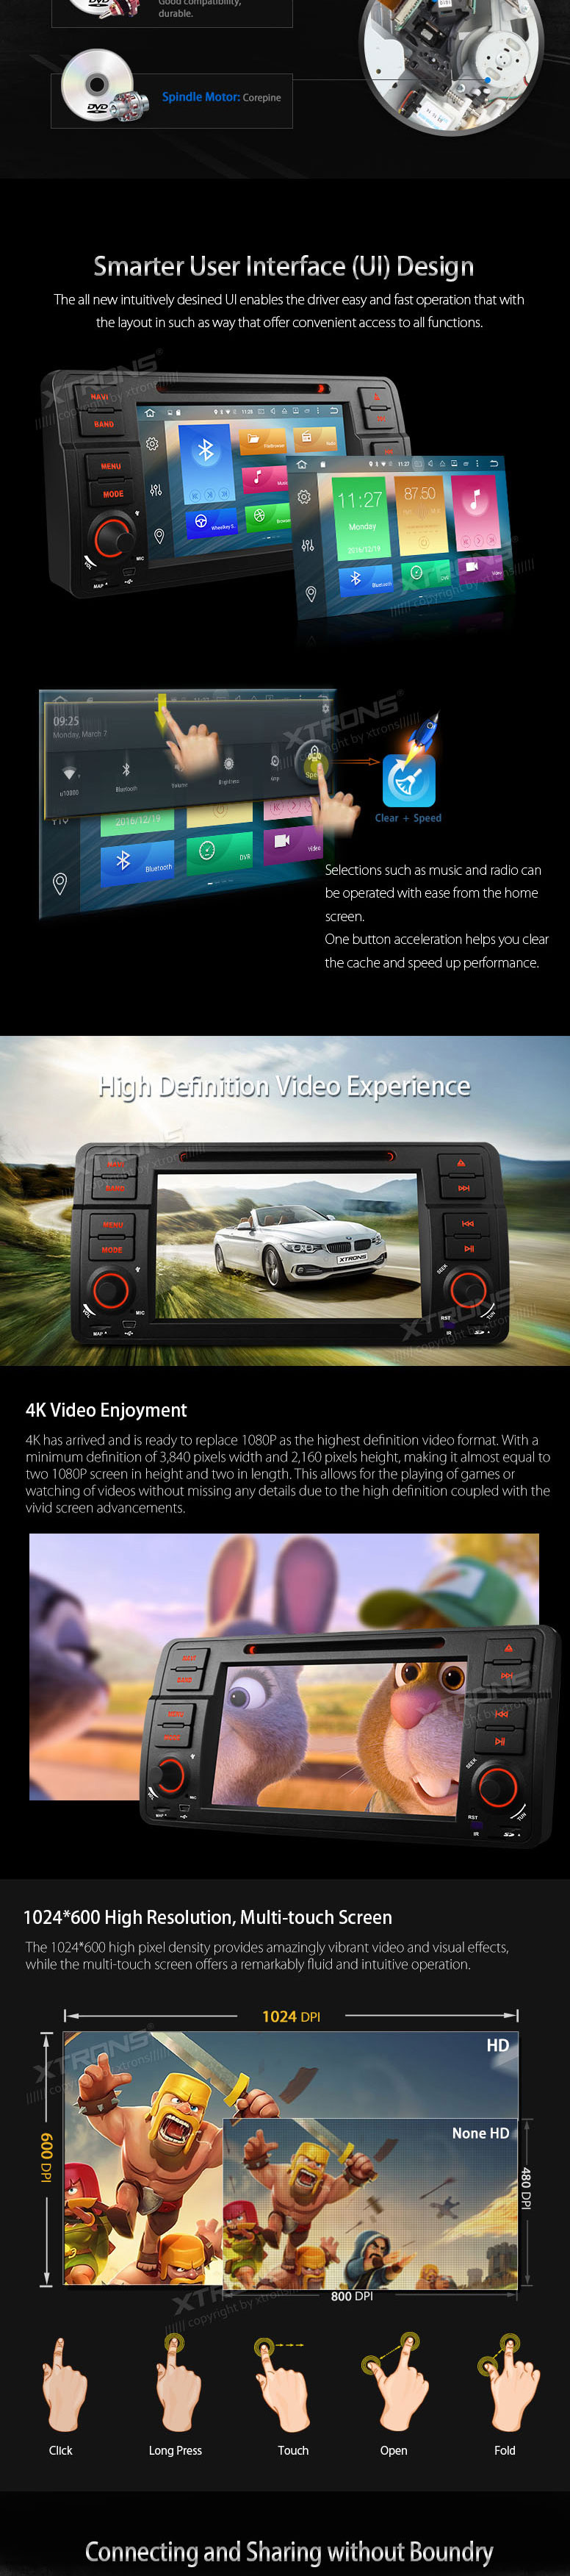 XTRONS 7″ Octa Core 4G Android 6.0 64bit 32GB+2G RAM Car DVD Player with TPMS OBD2 DAB+ GPS Maps for BMW E46/320/Rover 75/MG ZT